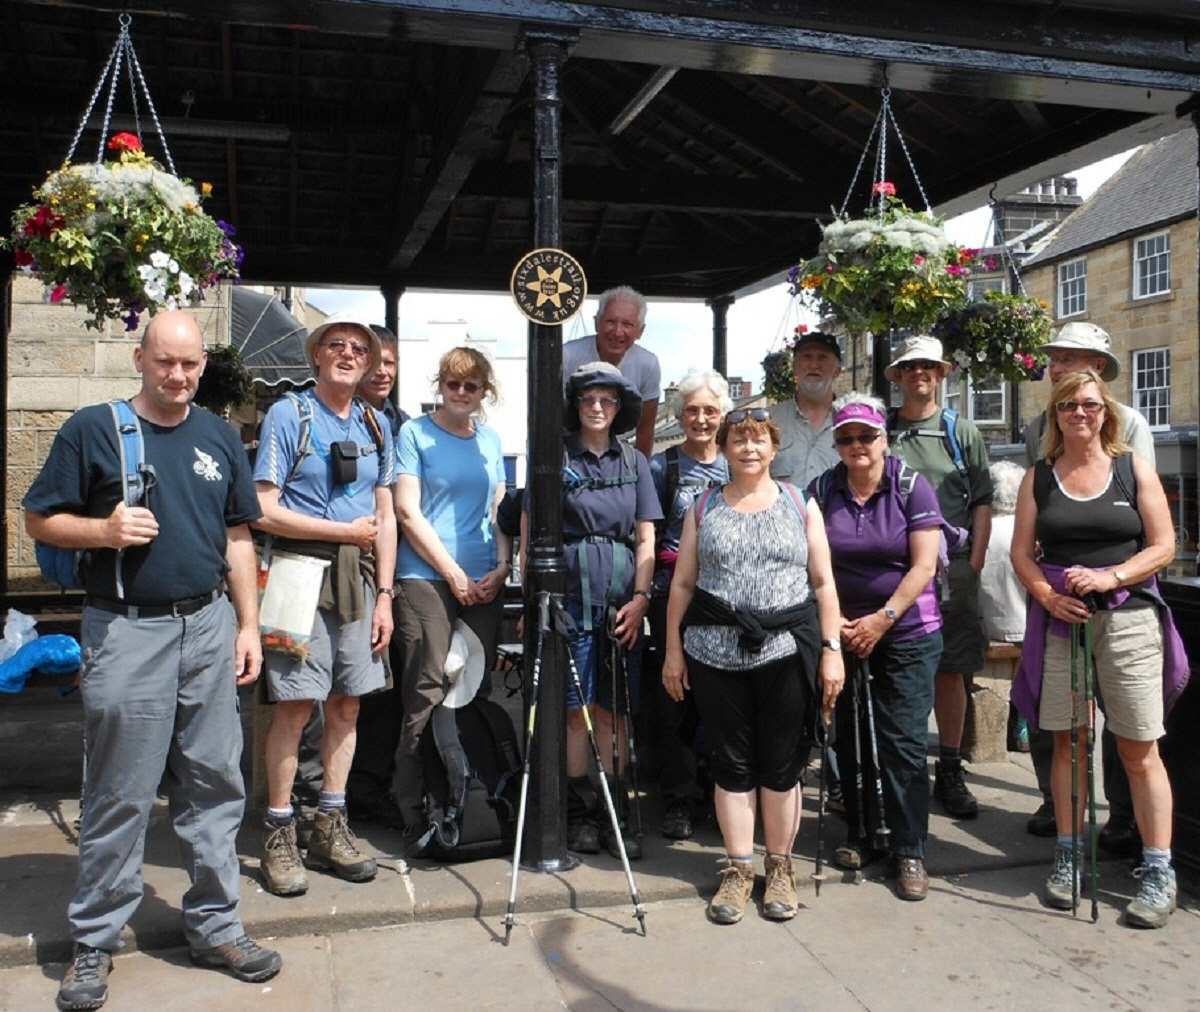 Walkers gathering at The Buttercross, the starting point of the Six Dales Trail, during the 2013 Otley Walking Festival.